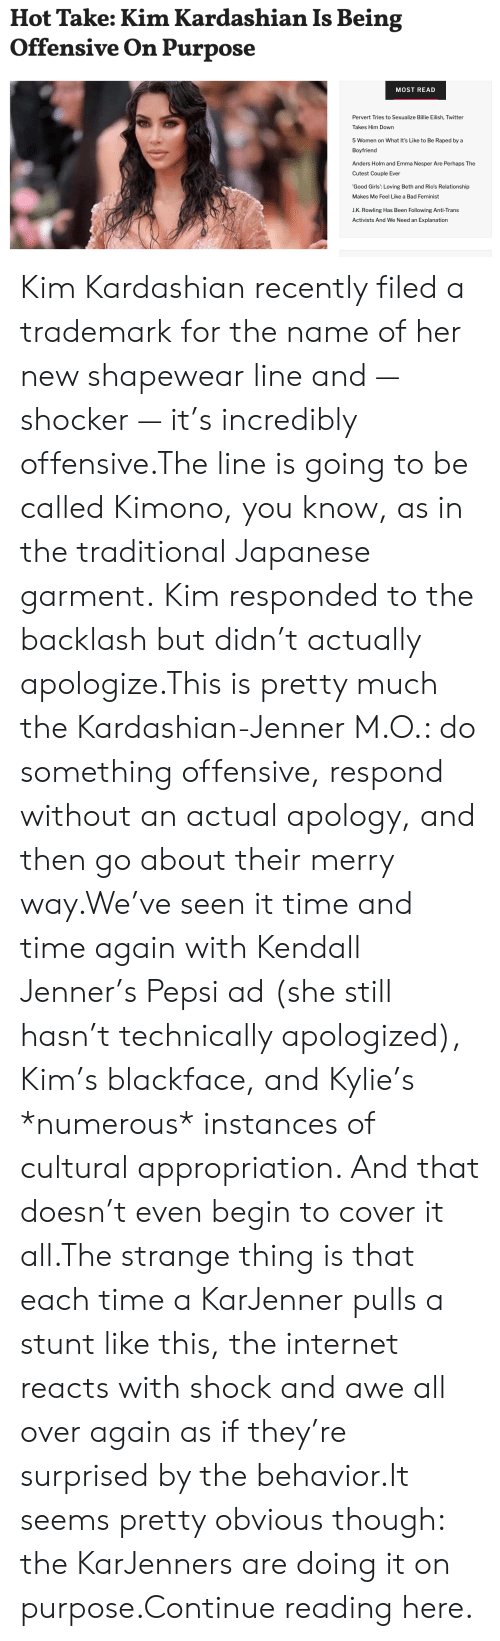 Cultural: Hot Take: Kim Kardashian Is Being  Offensive On Purpose  MOST READ  Pervert Tries to Sexualize Billie Eilish, Twitter  Takes Him Down  5 Women on What It's Like to Be Raped by a  Boyfriend  Anders Holm and Emma Nesper Are Perhaps The  Cutest Couple Ever  'Good Girls': Loving Beth and Rio's Relationship  Makes Me Feel Like a Bad Feminist  J.K. Rowling Has Been Following Anti-Trans  Activists And We Need an Explanation Kim Kardashian recently filed a trademark for the name of her new shapewear line and — shocker — it's incredibly offensive.The line is going to be called Kimono, you know, as in the traditional Japanese garment. Kim responded to the backlash but didn't actually apologize.This is pretty much the Kardashian-Jenner M.O.: do something offensive, respond without an actual apology, and then go about their merry way.We've seen it time and time again with Kendall Jenner's Pepsi ad (she still hasn't technically apologized), Kim's blackface, and Kylie's *numerous* instances of cultural appropriation. And that doesn't even begin to cover it all.The strange thing is that each time a KarJenner pulls a stunt like this, the internet reacts with shock and awe all over again as if they're surprised by the behavior.It seems pretty obvious though: the KarJenners are doing it on purpose.Continue reading here.